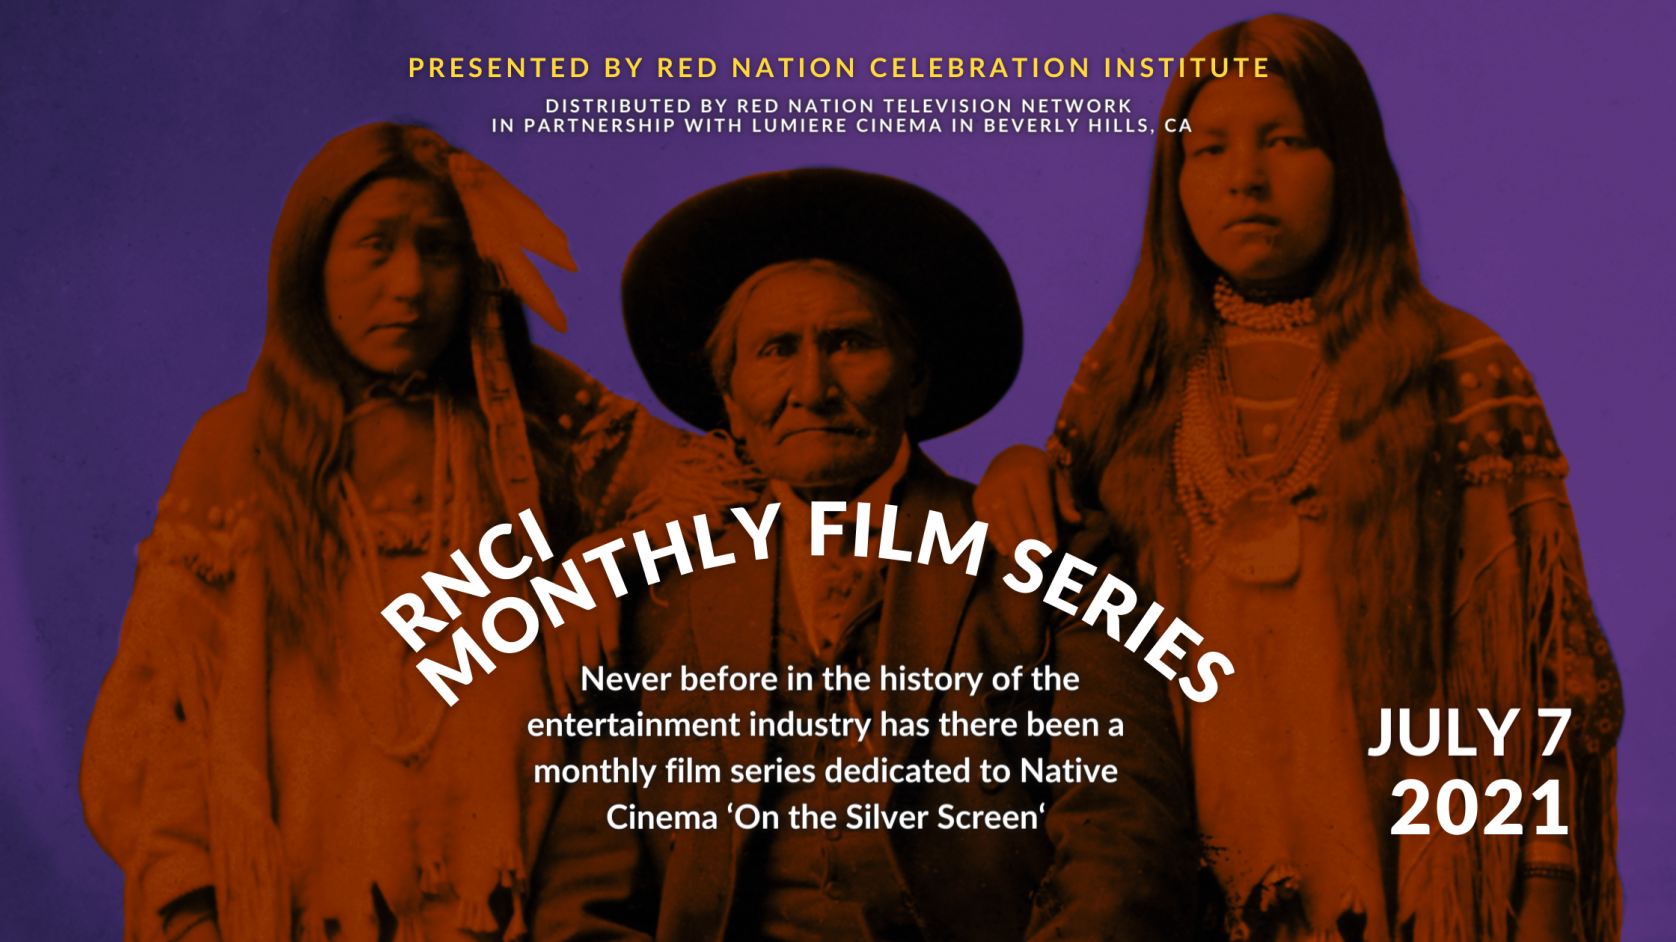 RNCI Monthly-Film-Series-July-7-2021